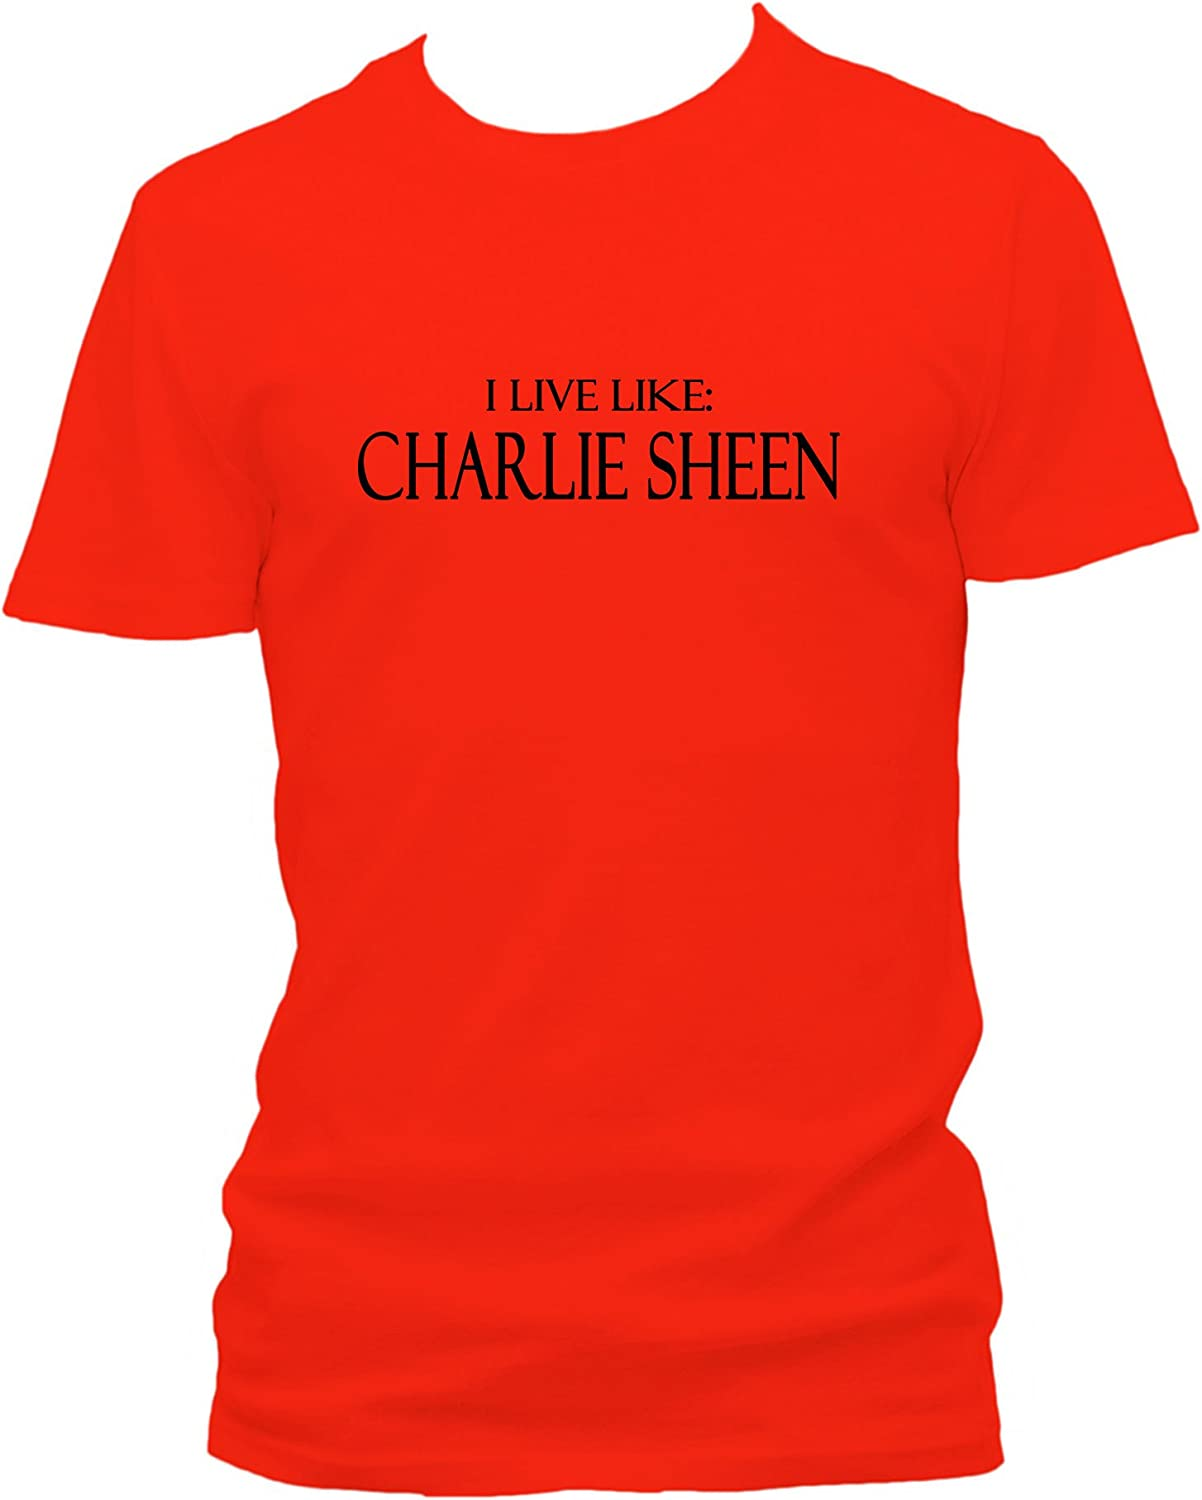 I Live Like Charlie Sheen Party Sex Drogas Club FUN – Camiseta rojo X-Large: Amazon.es: Ropa y accesorios